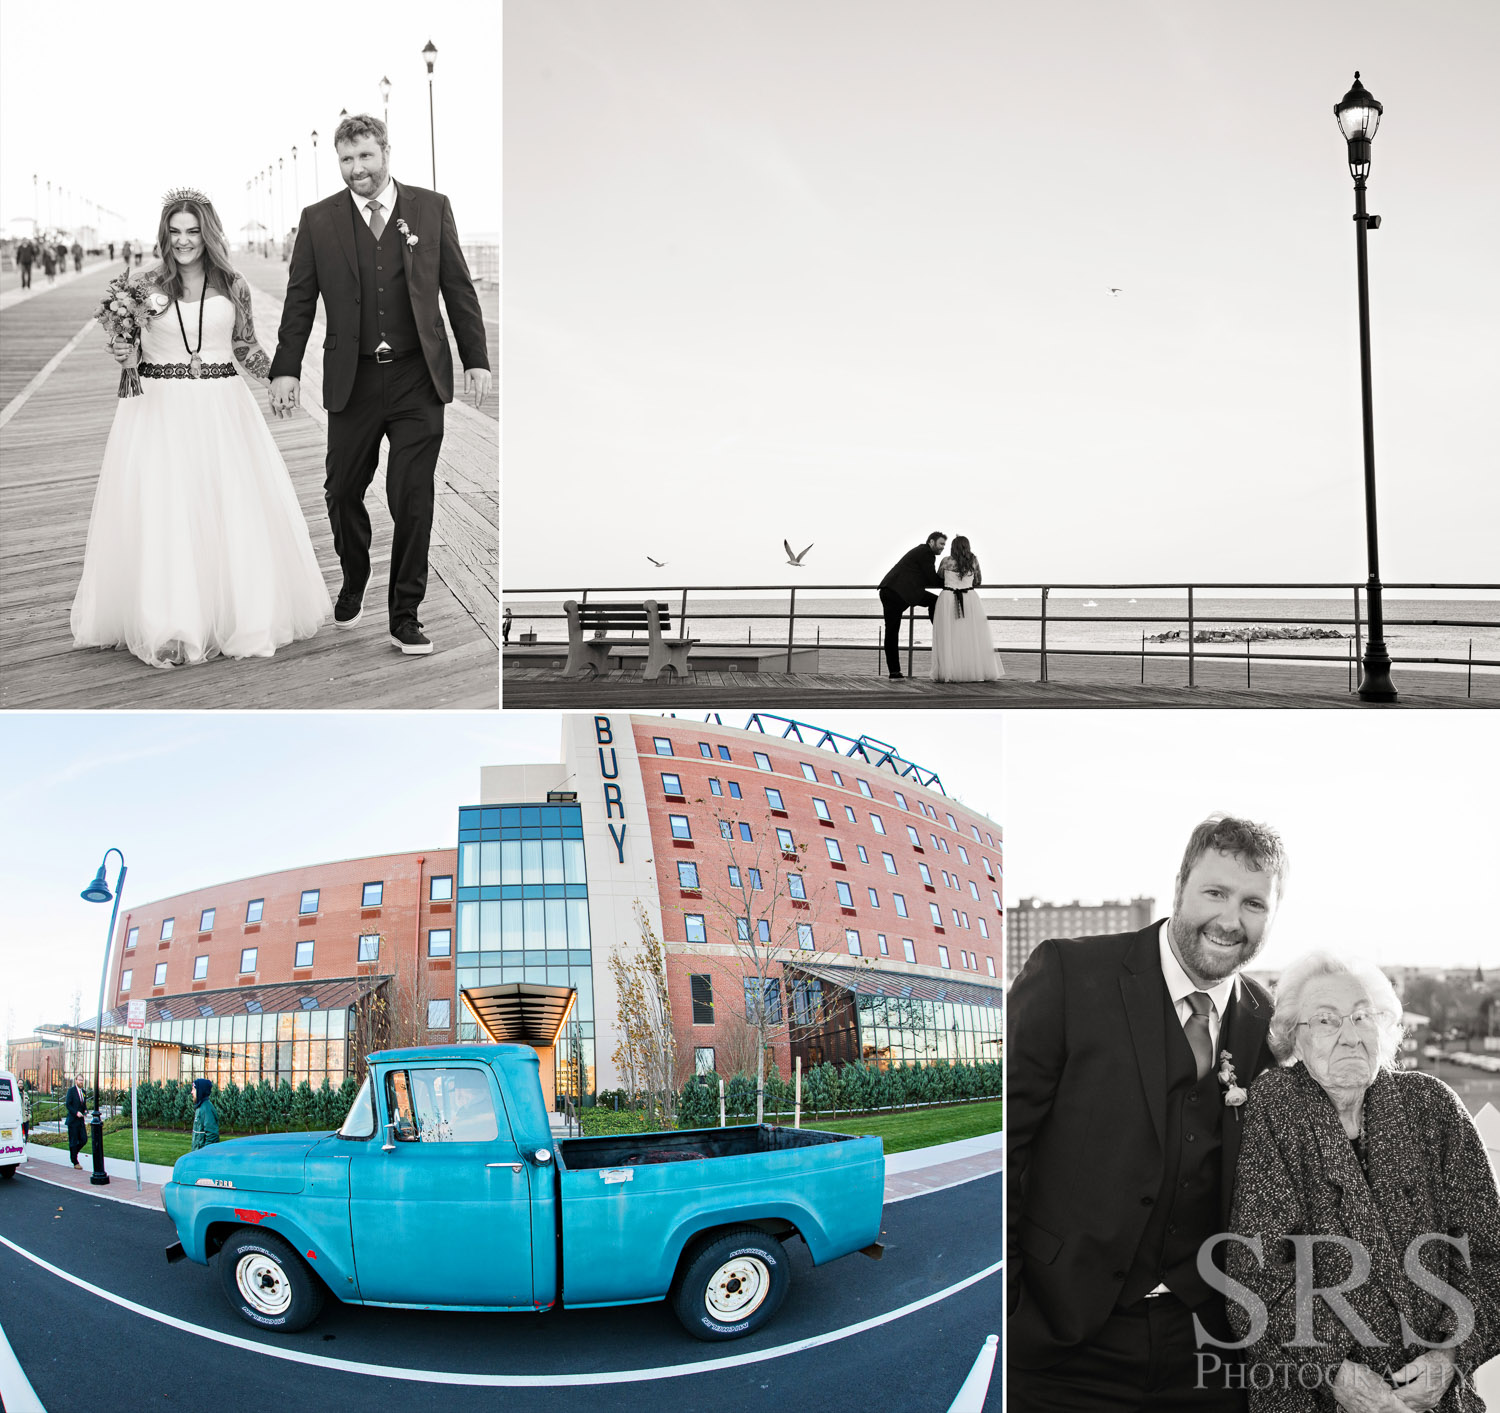 10_srs_photography_sara_stadtmiller_asbury_park_wedding_photography_nj_wedding_photographer_monmouth_county_wedding_photographer_the_asbury_hotel